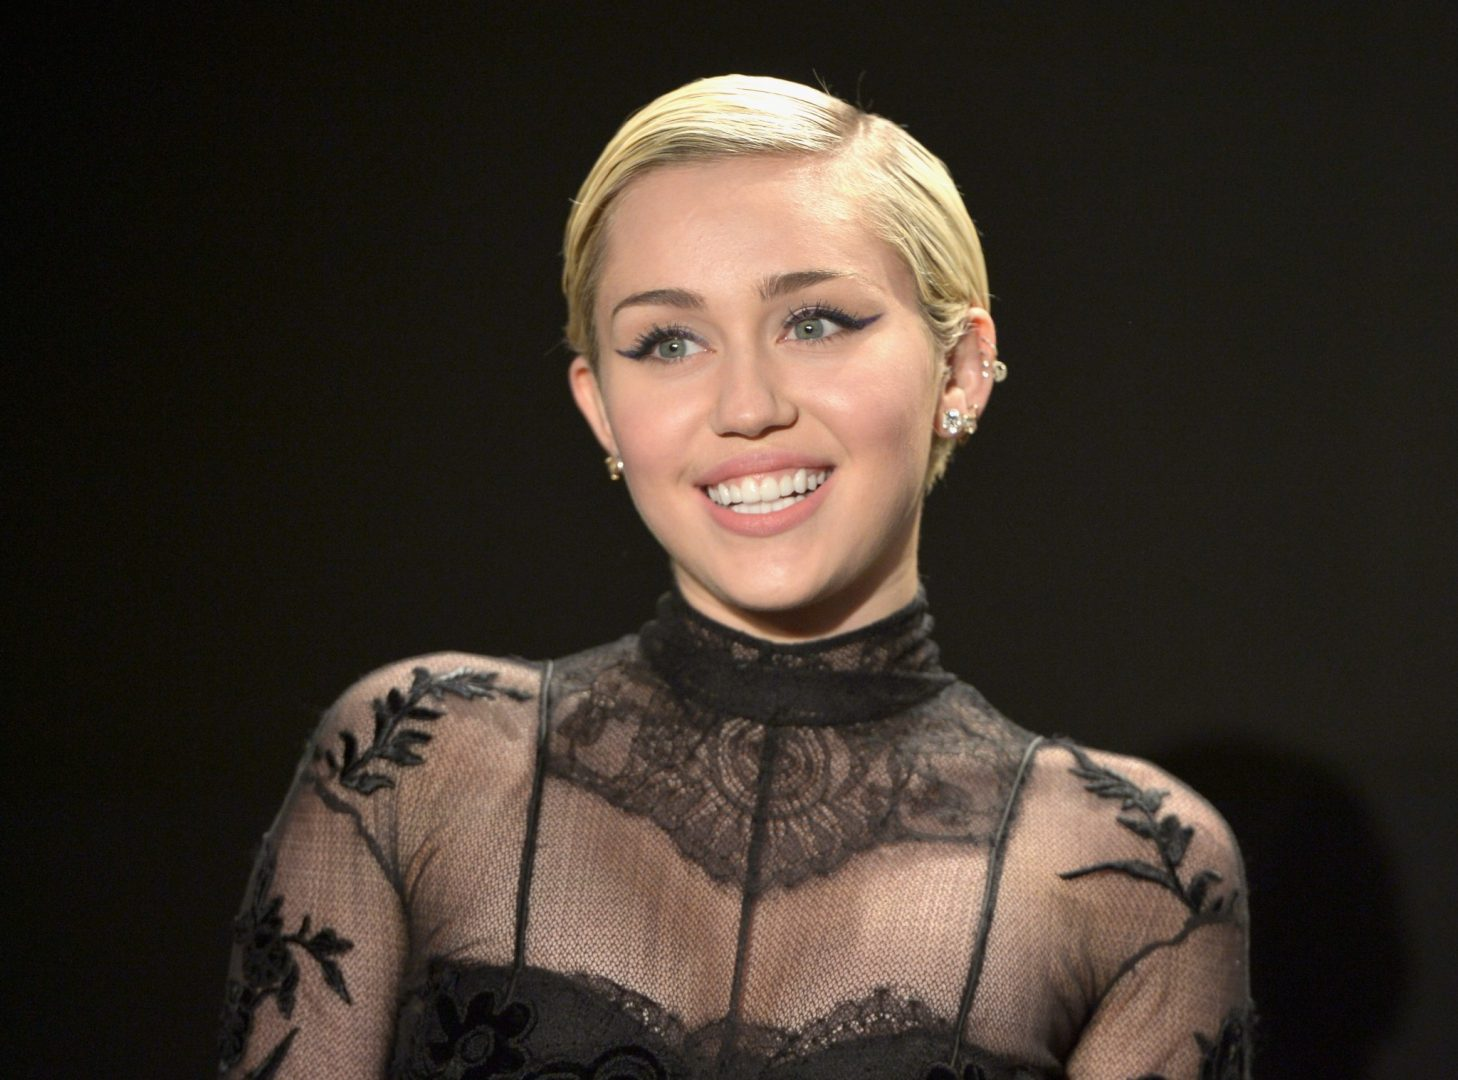 Miley Cyrus starring in Woody Allen Amazon TV series